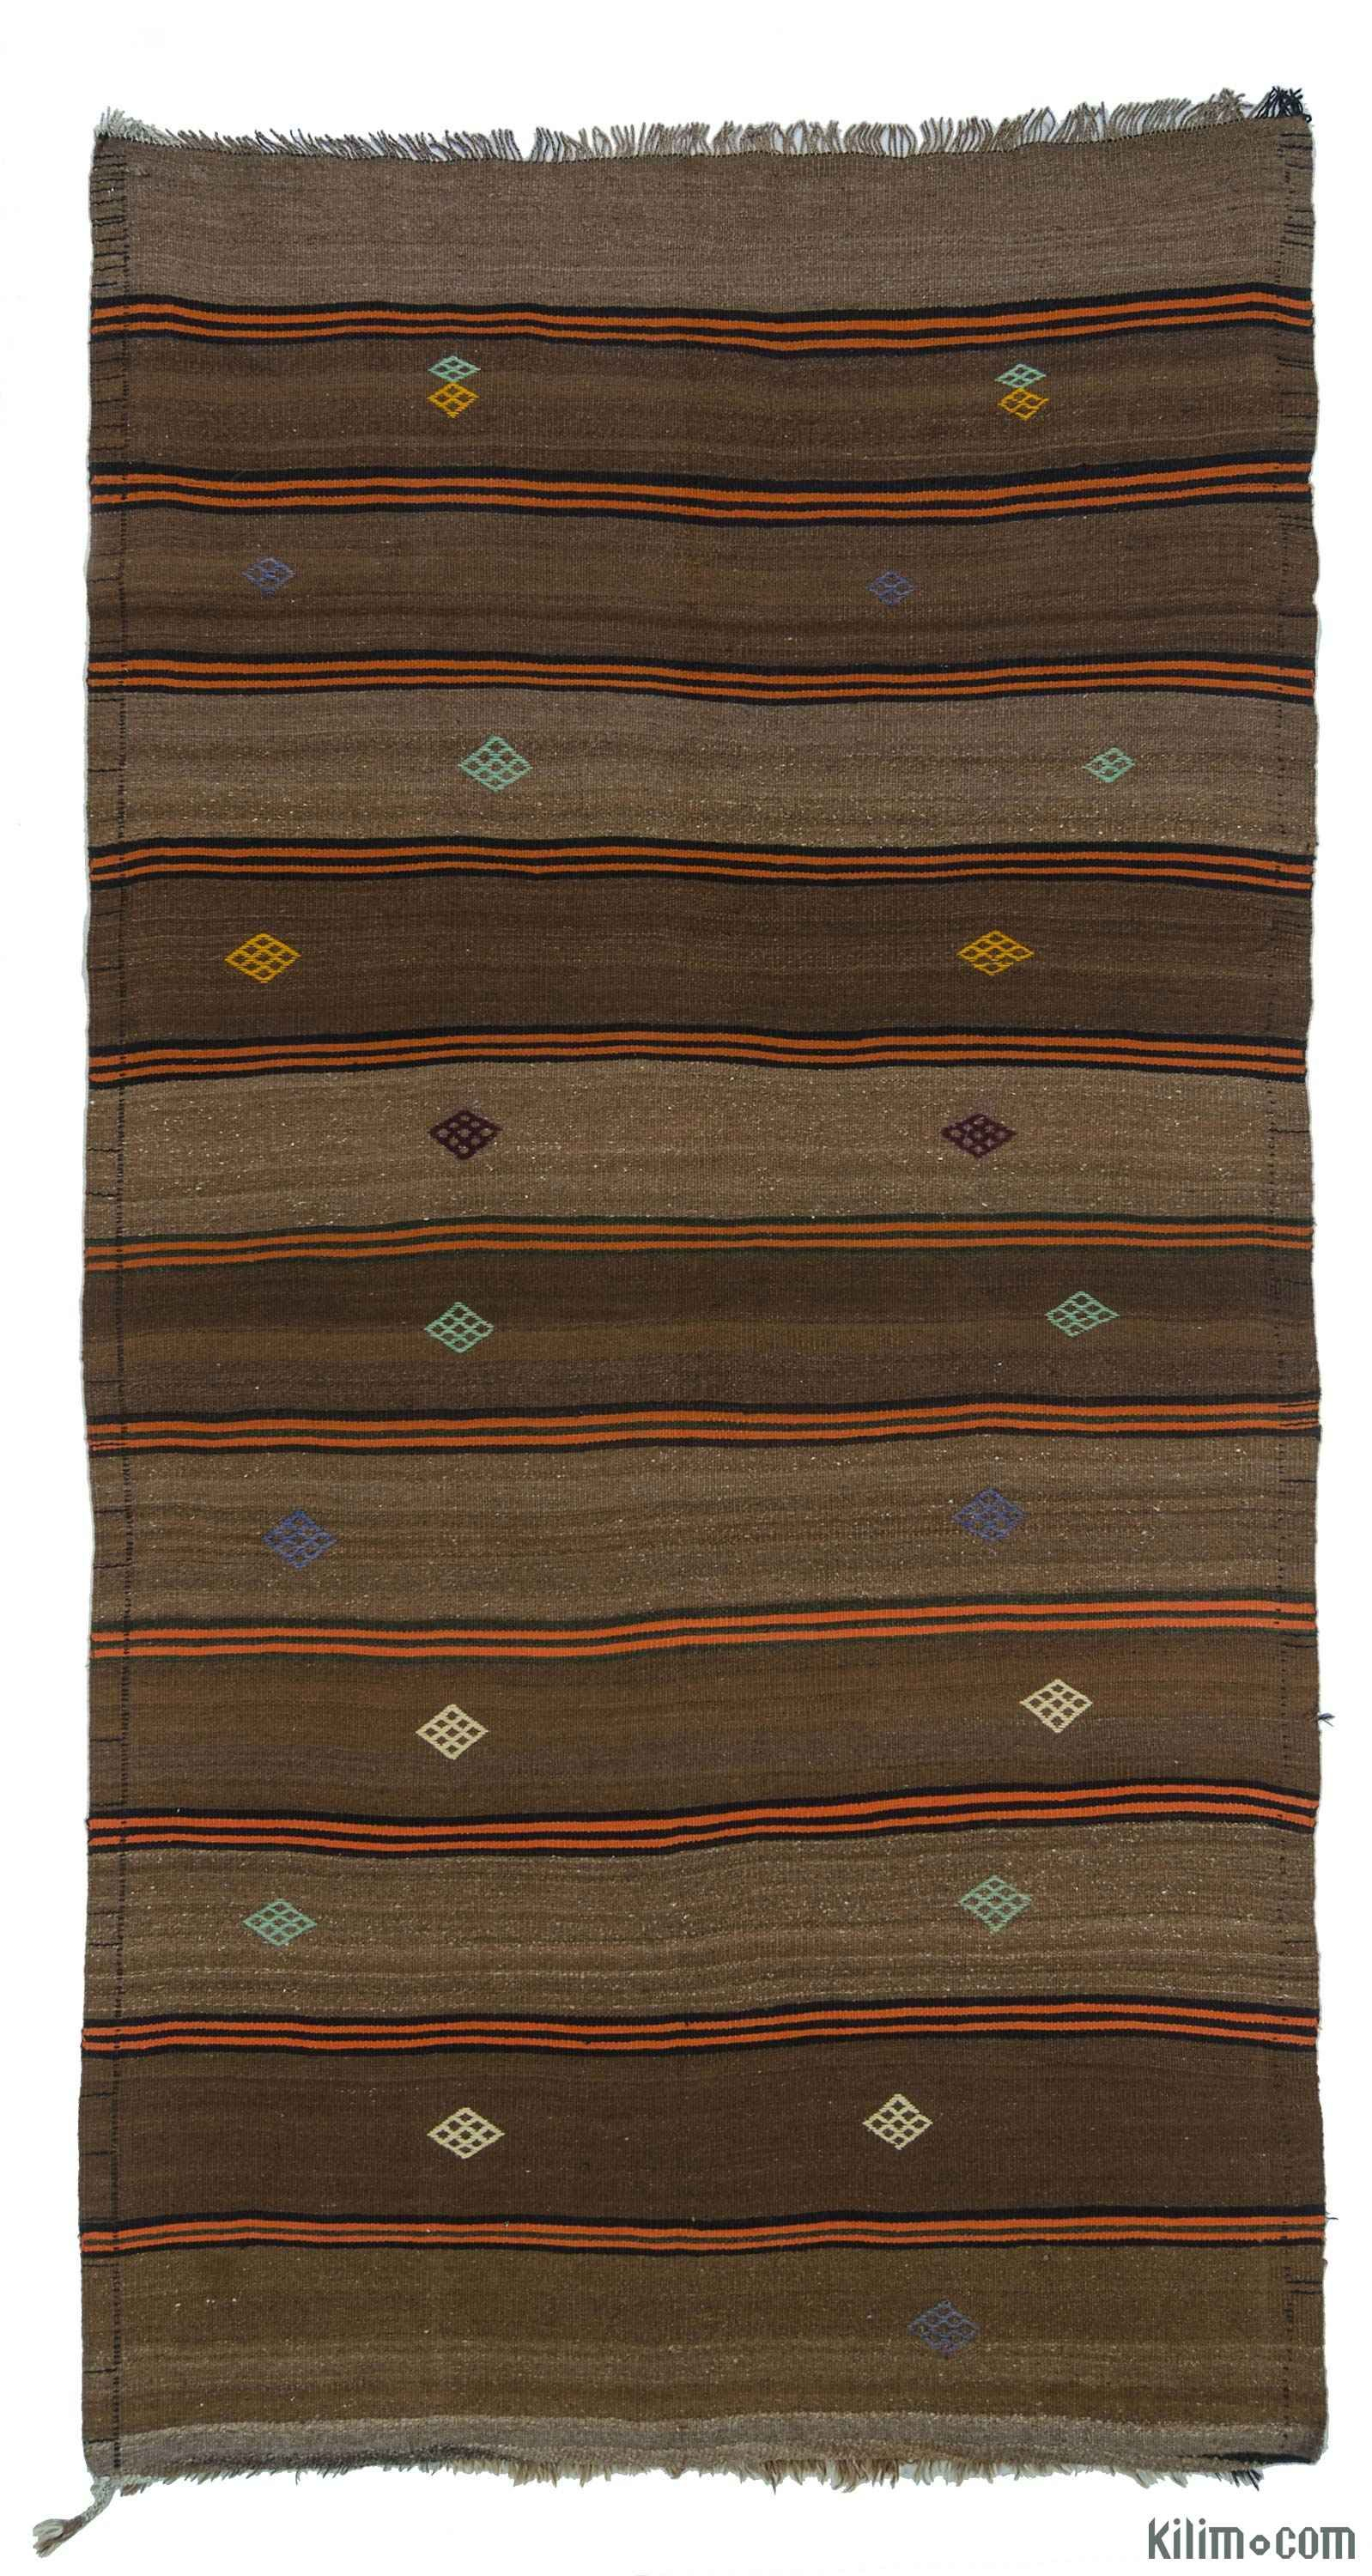 Teppiche Vintage Patchwork Vintage Striped Kilim Rug With Jijims Handwoven In Turkey In